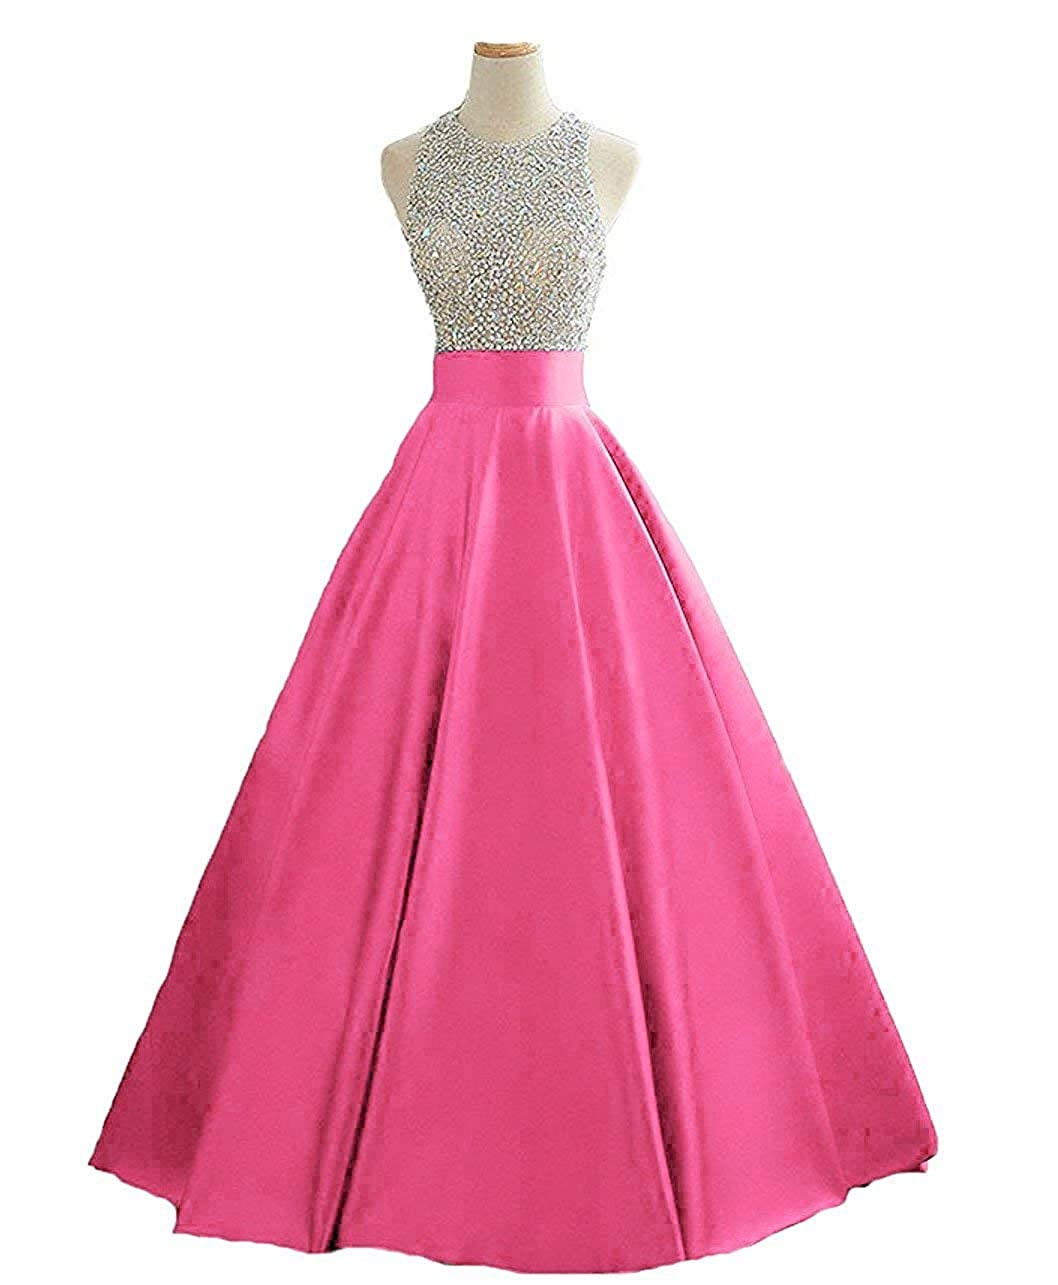 Fuchsia2 Dressytailor Hater Aline Long Sequined Evening Party Gown Beaded Formal Prom Dress with Pockets